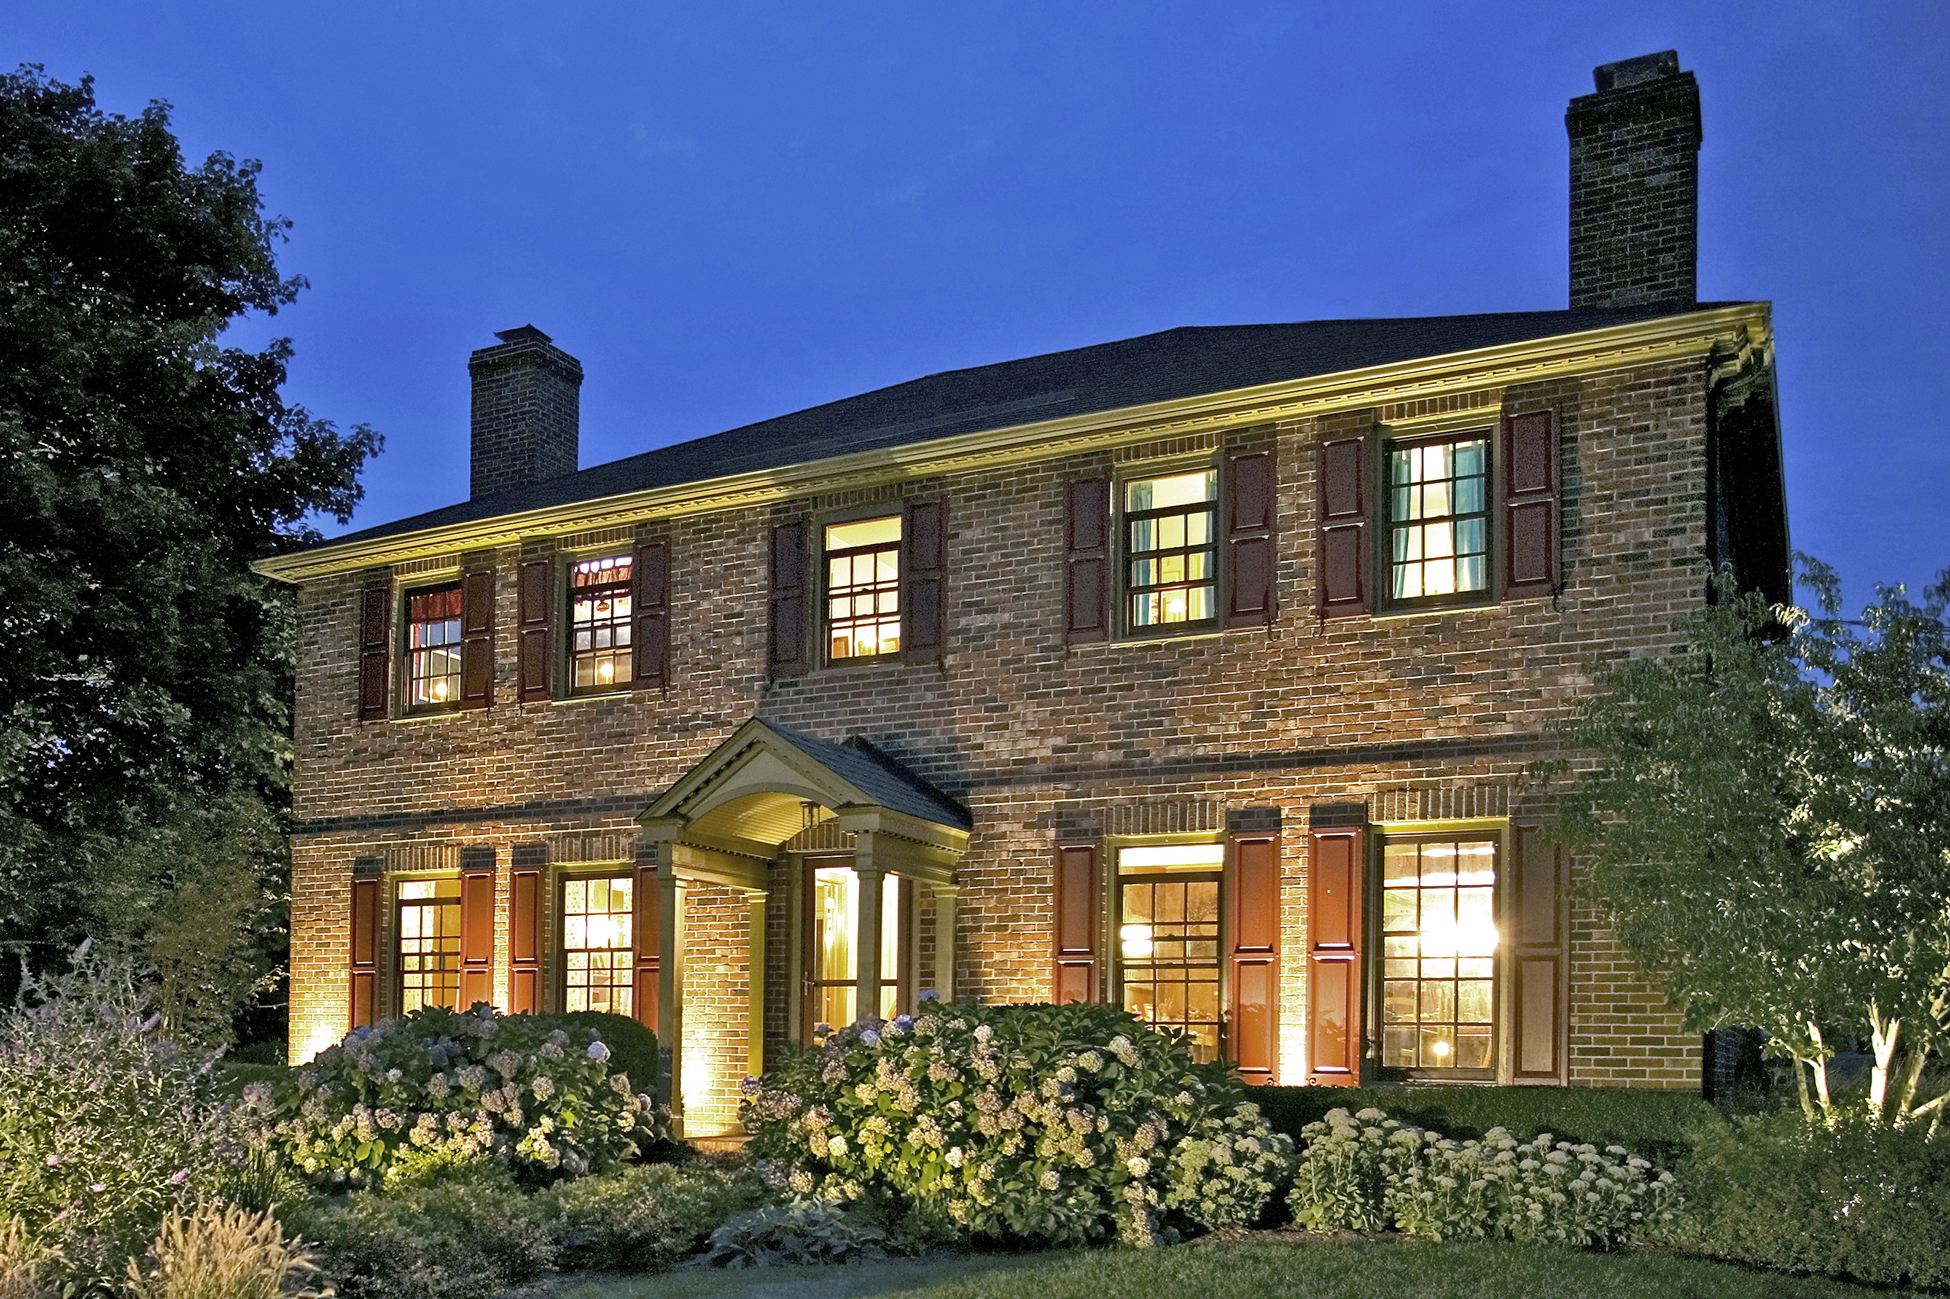 Property For Sale at A Colonial Reproduction On Glorious Grounds - Franklin Township